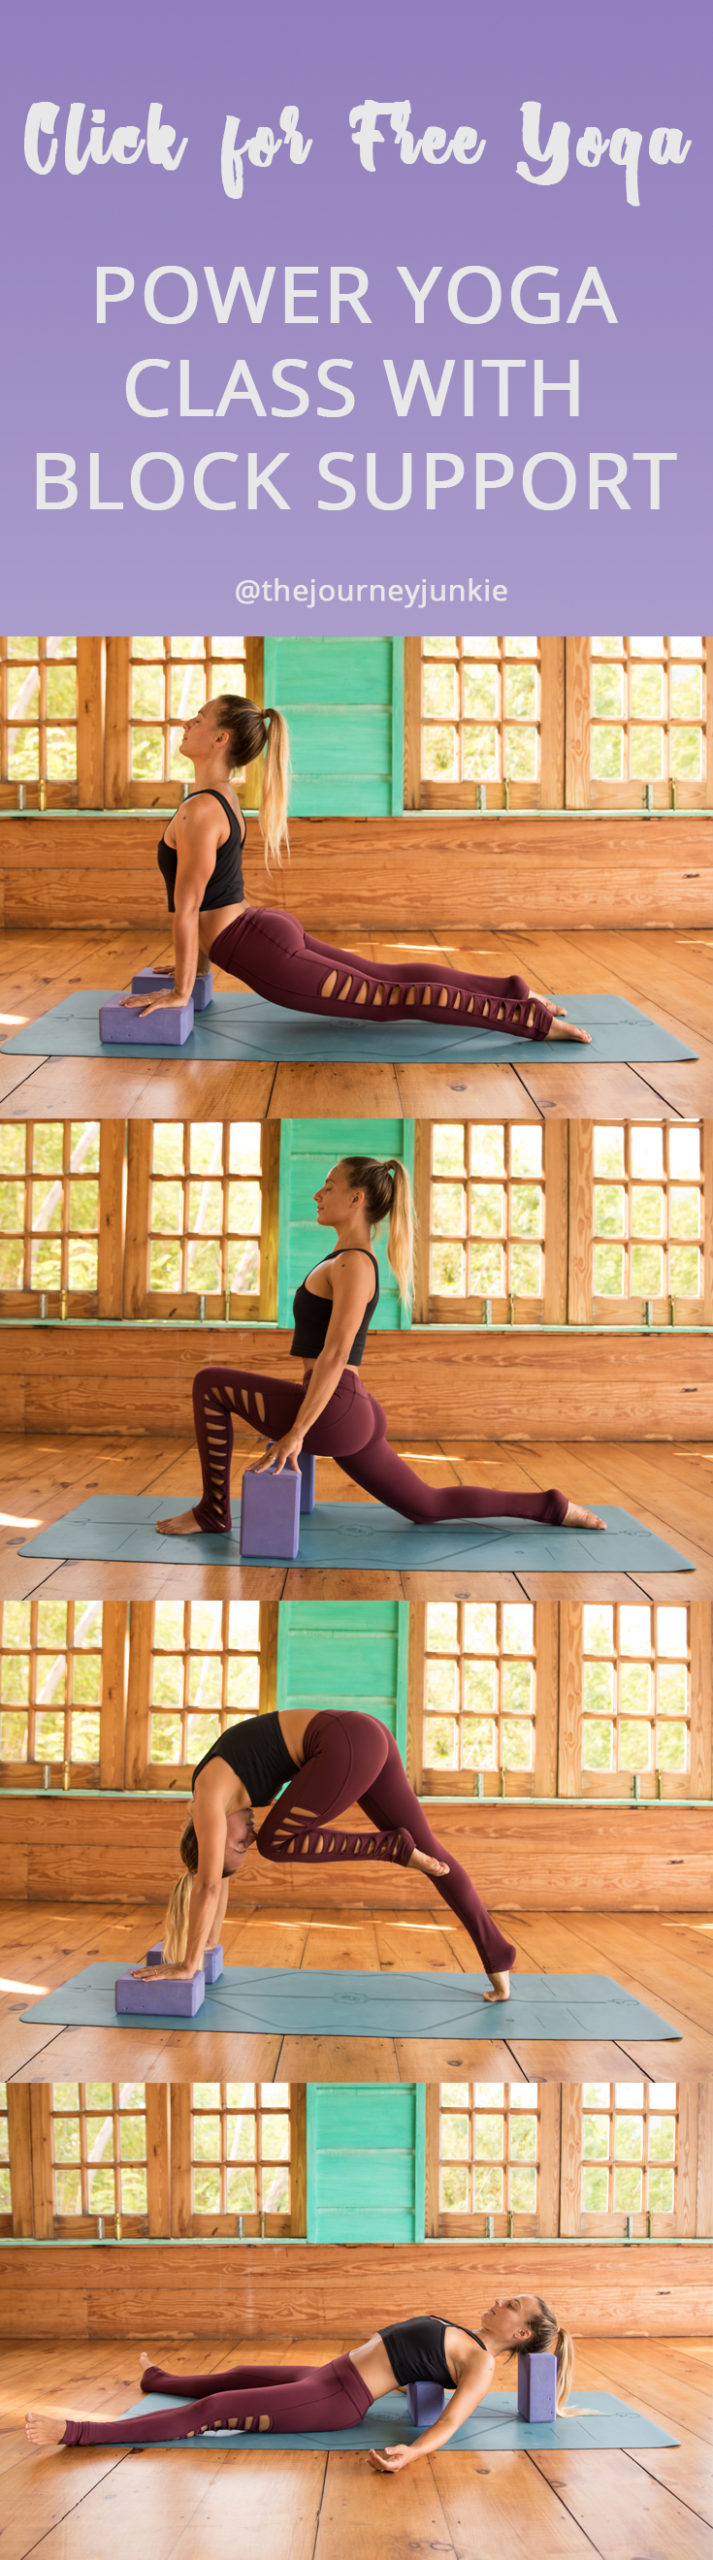 Grab Your Yoga Blocks: Vinyasa Yoga Practice for Strength and Support - Pin Now, Get on Your Yoga Mat Now!